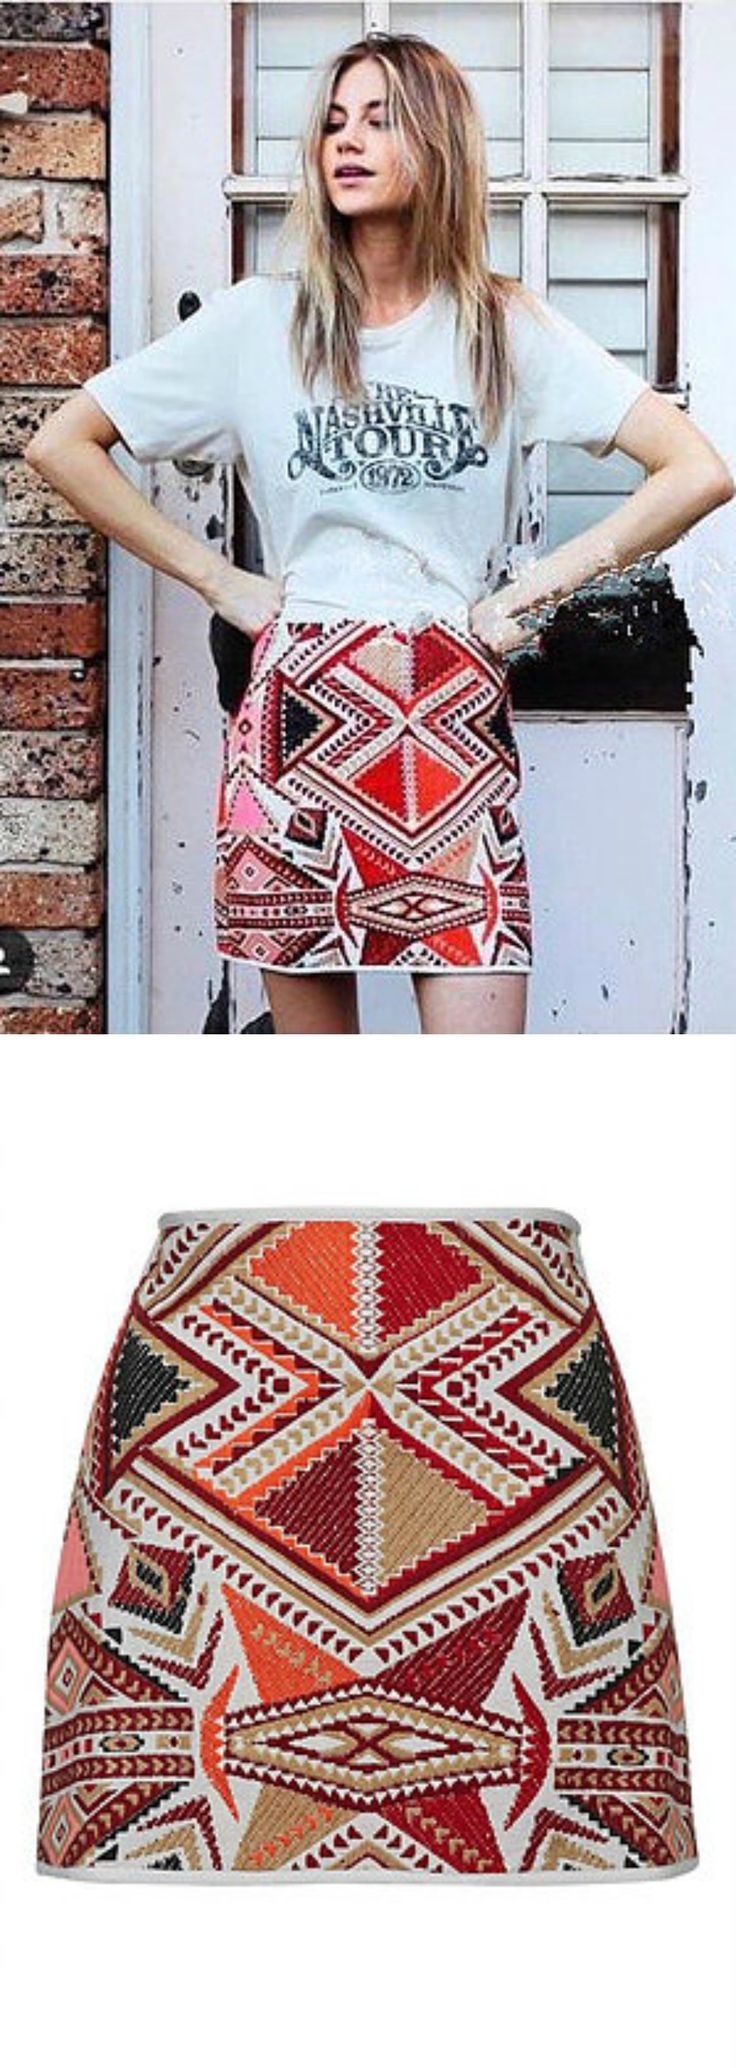 $39 - Boho Tapestry Skirt is Available at Pasaboho * this skirt exhibits brilliant colours with unique tribal patterns.